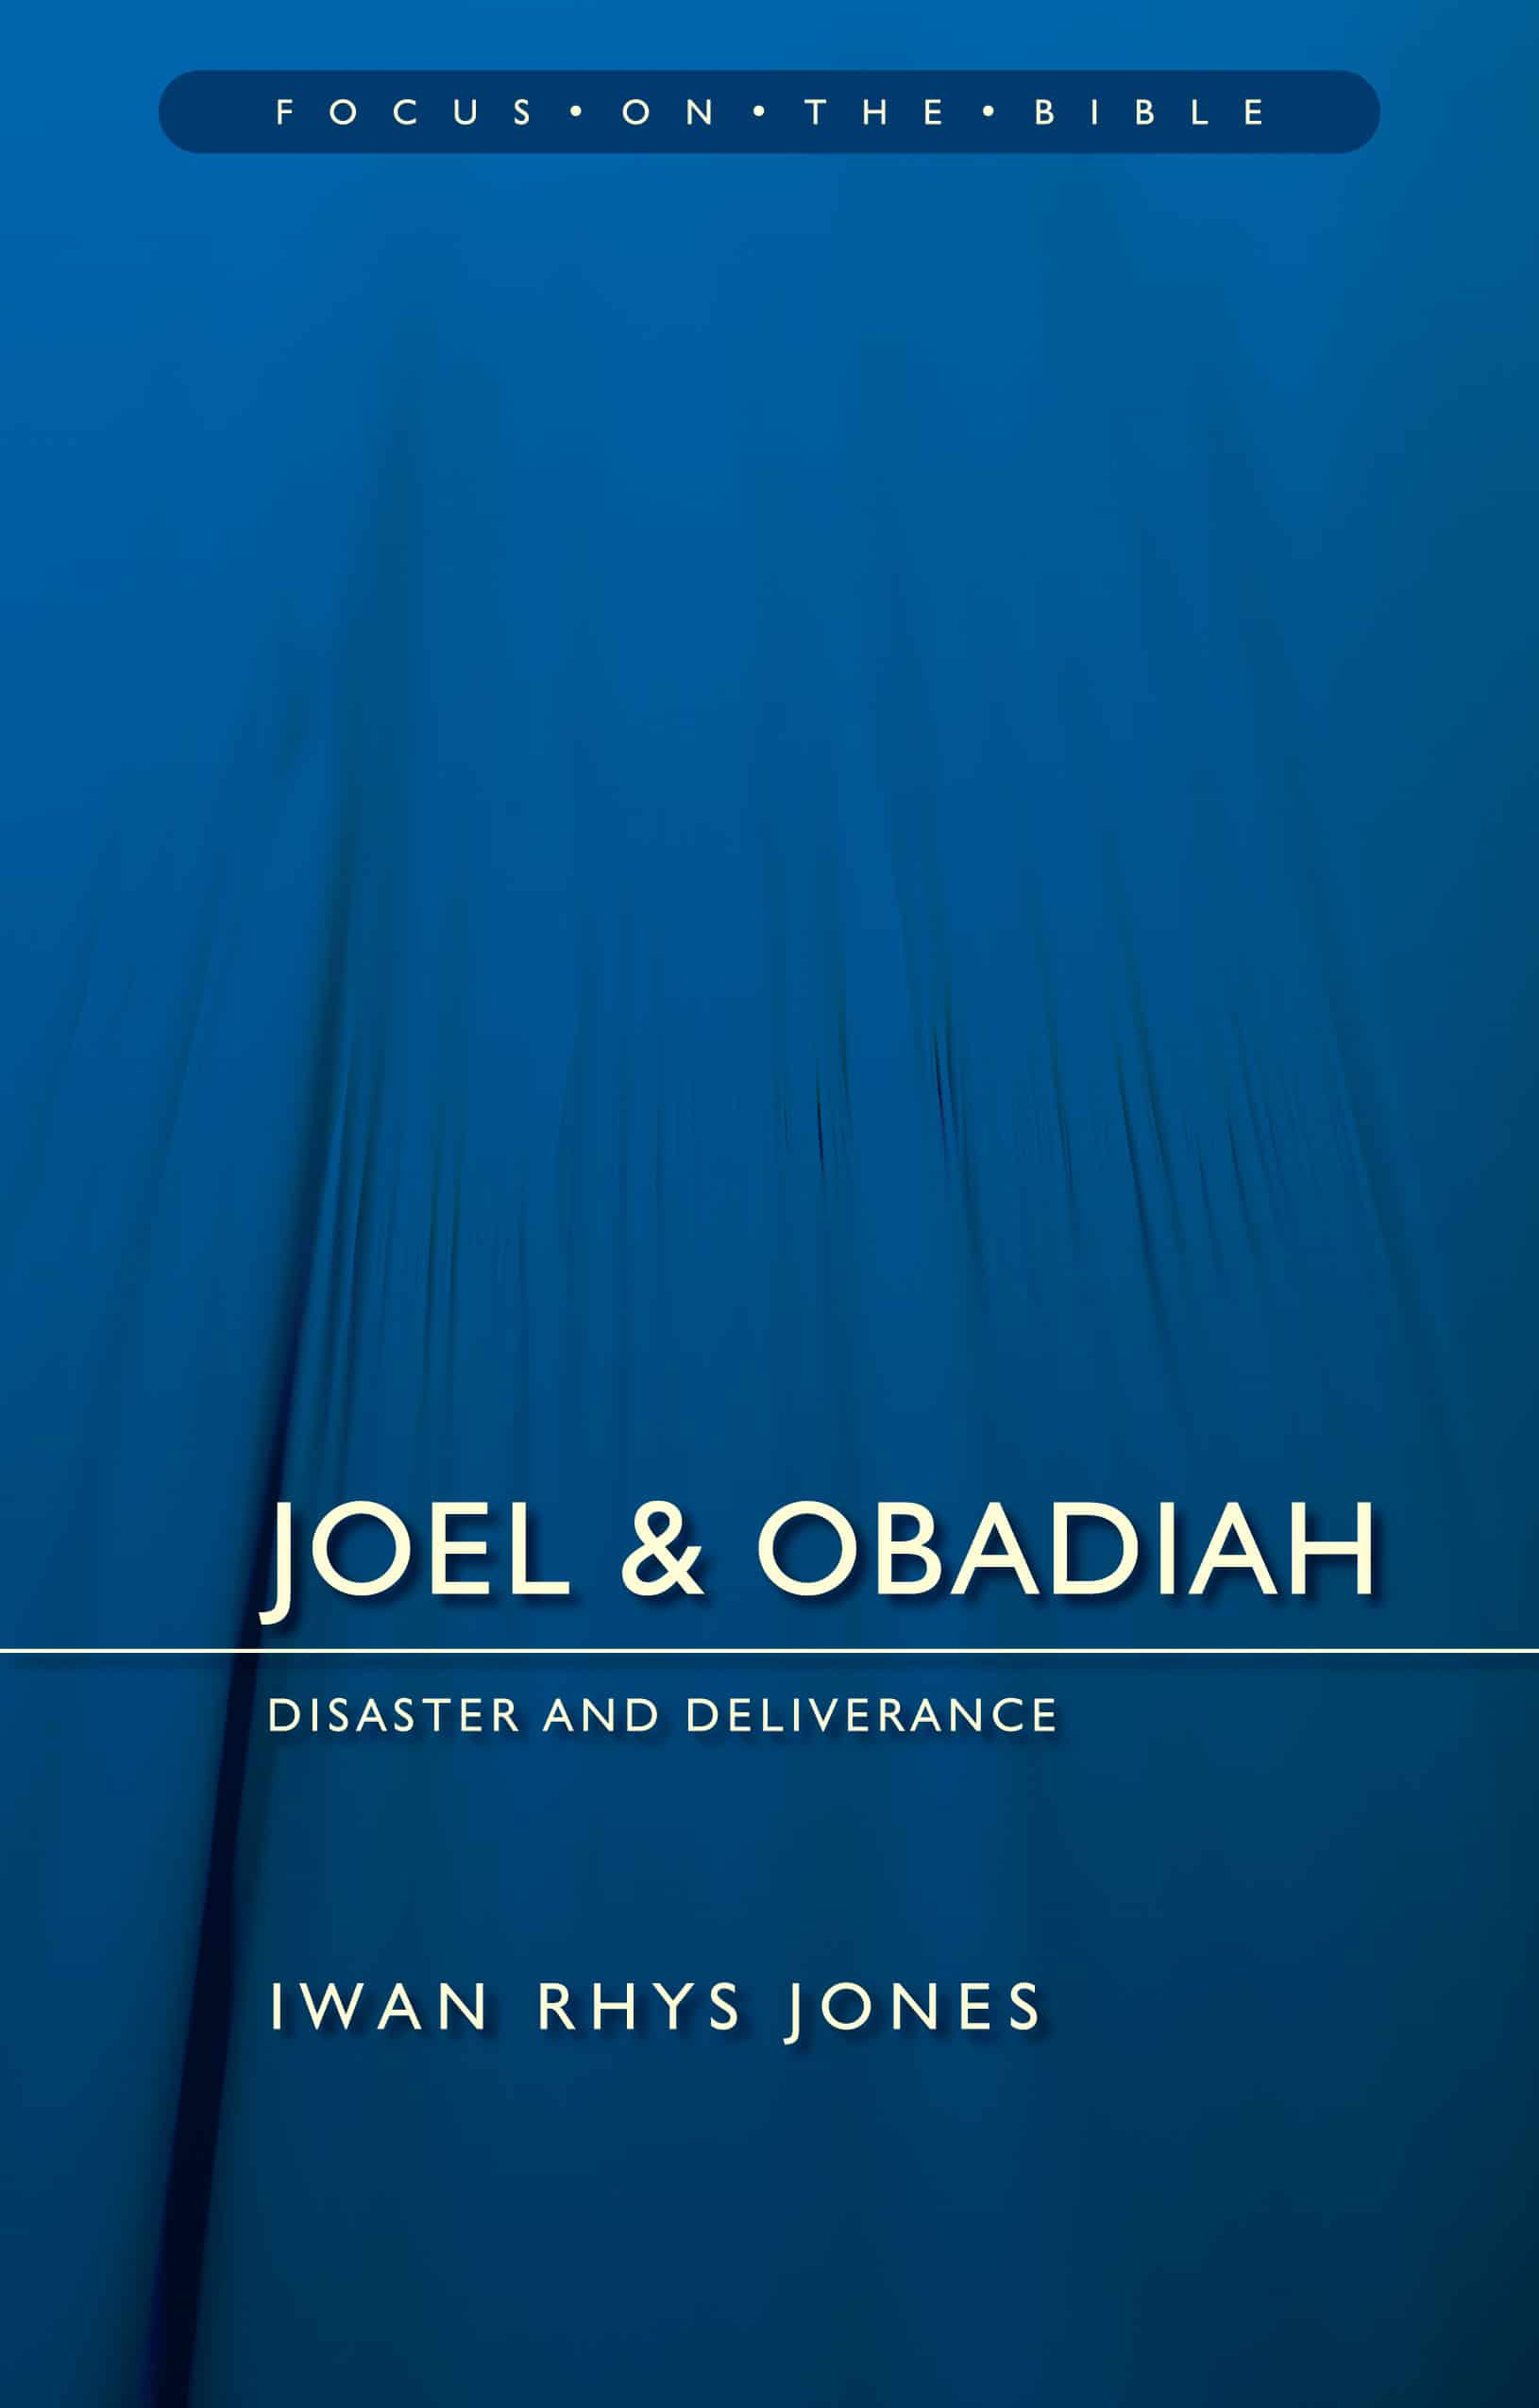 Disaster, Joel & Obadiah: Disaster and Deliverance, Servants of Grace